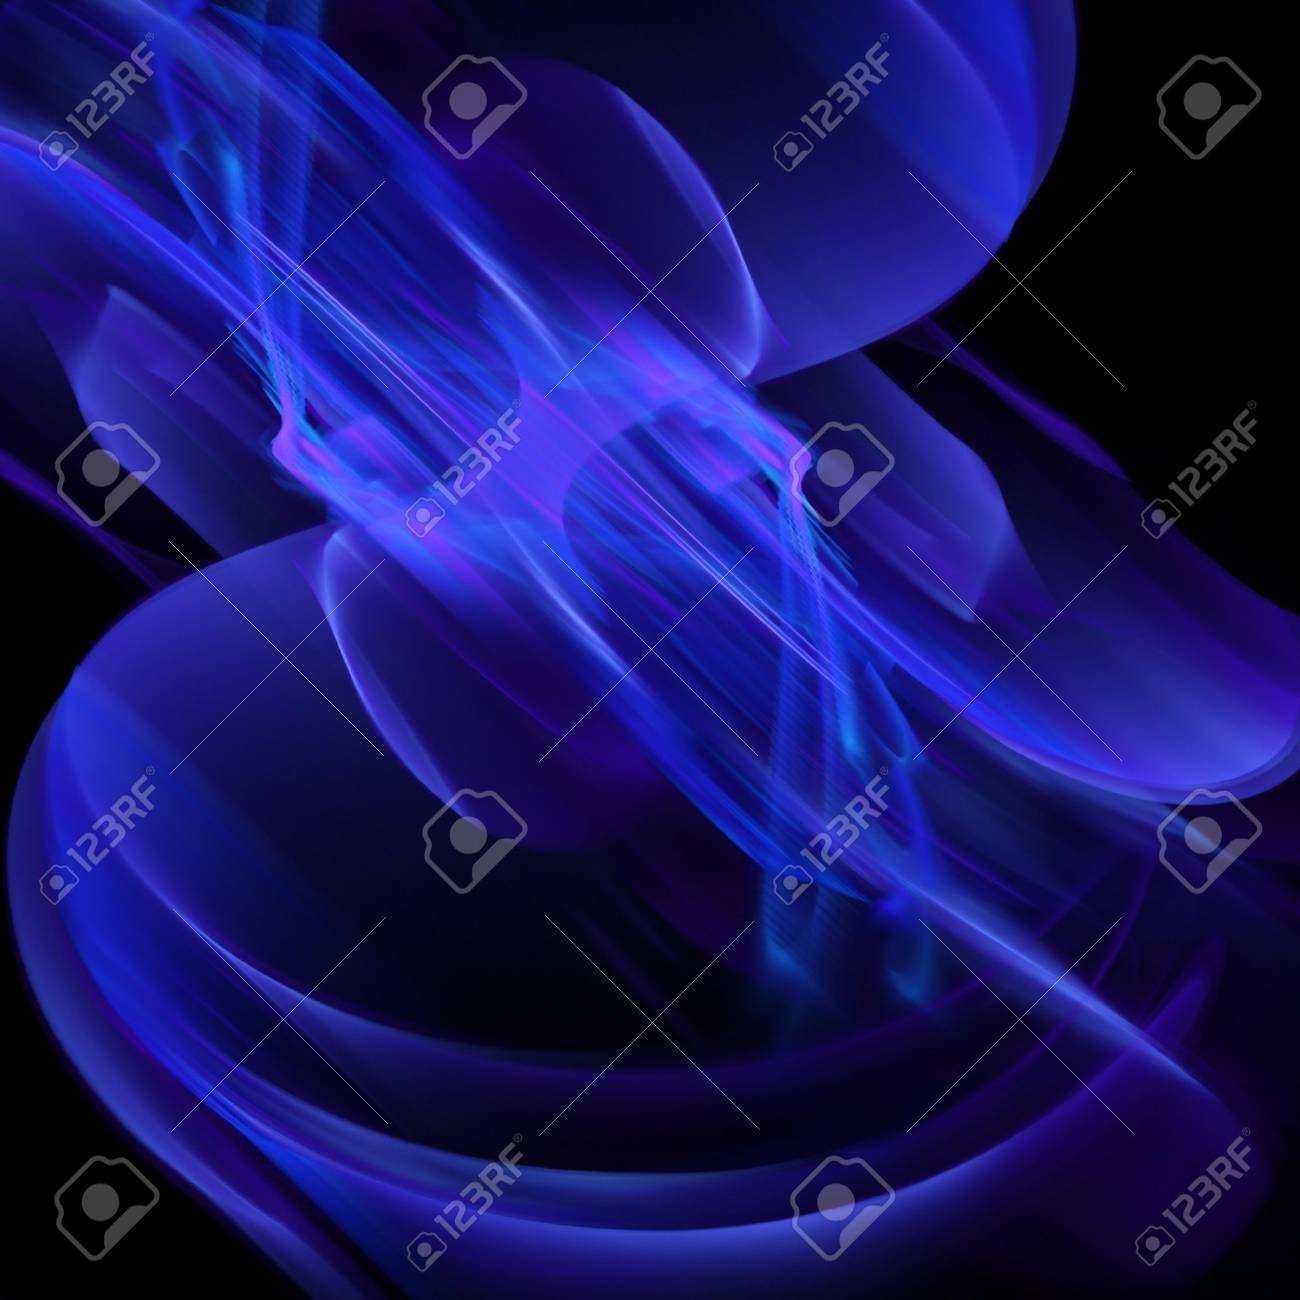 Abstract design Stock Photo - 4682062